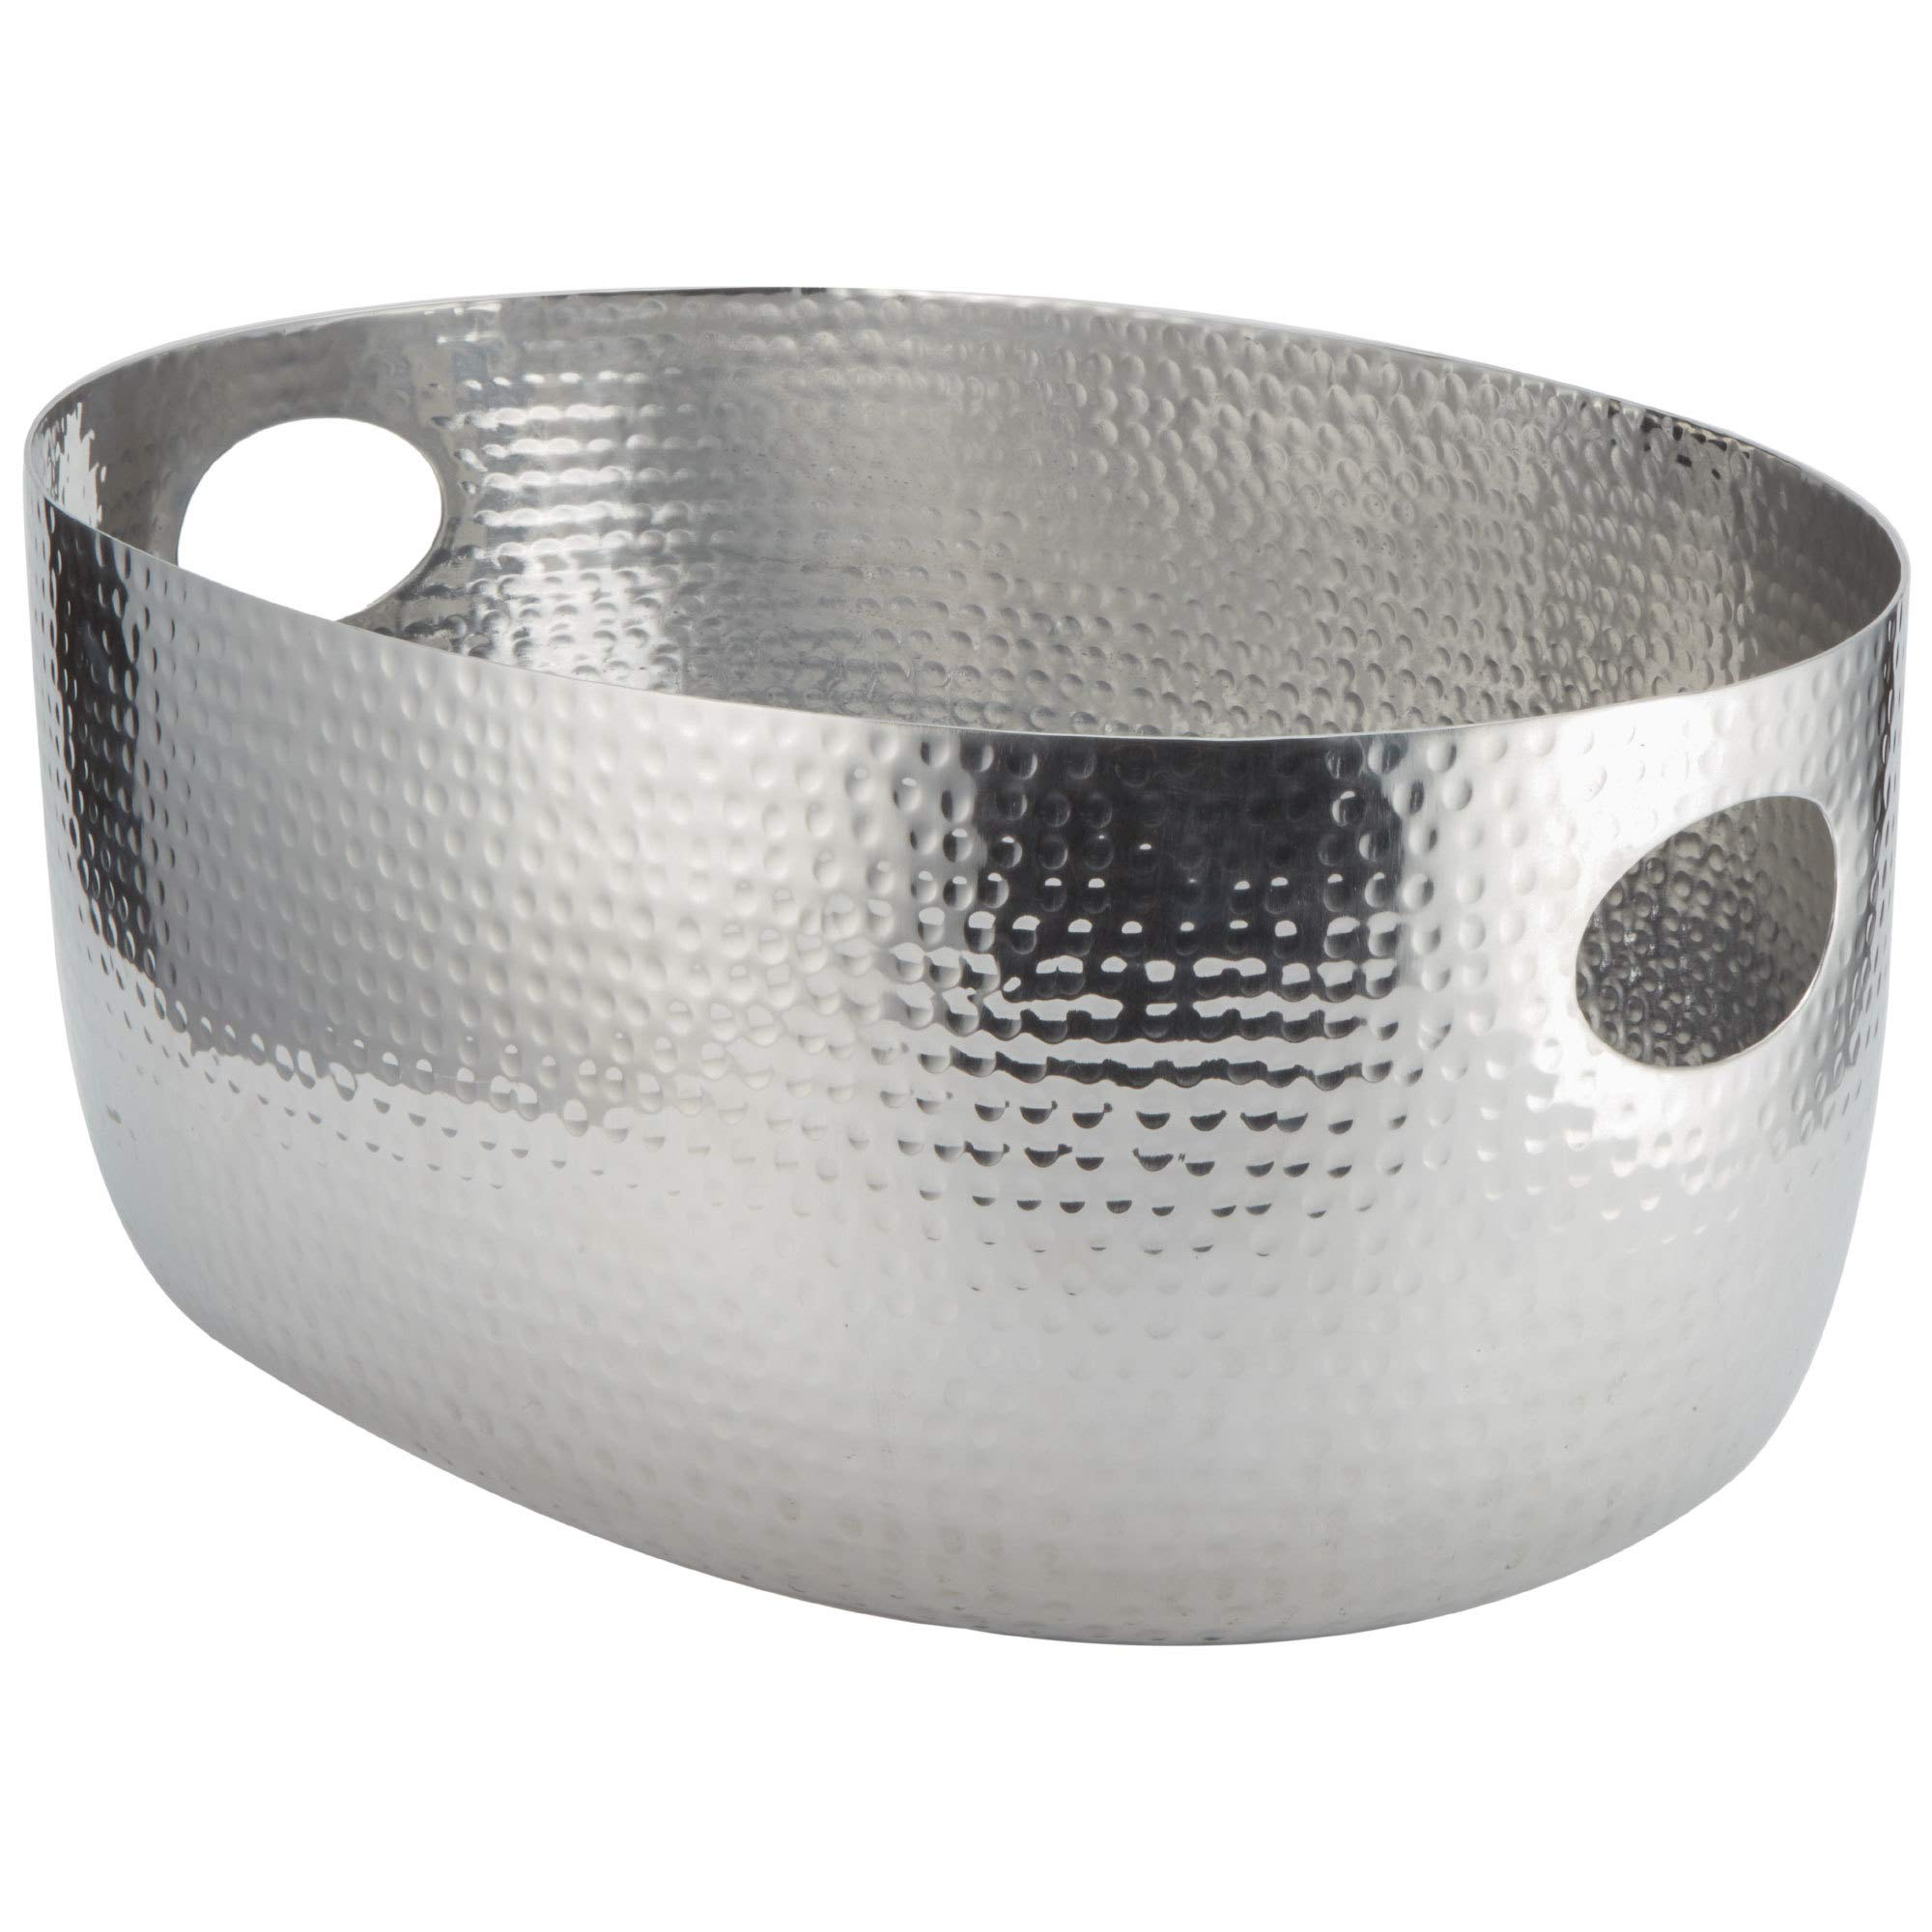 TableTop King ATHS14 Silver Hammered Aluminum Beverage Tub - 19'' x 14'' x 8 1/4''